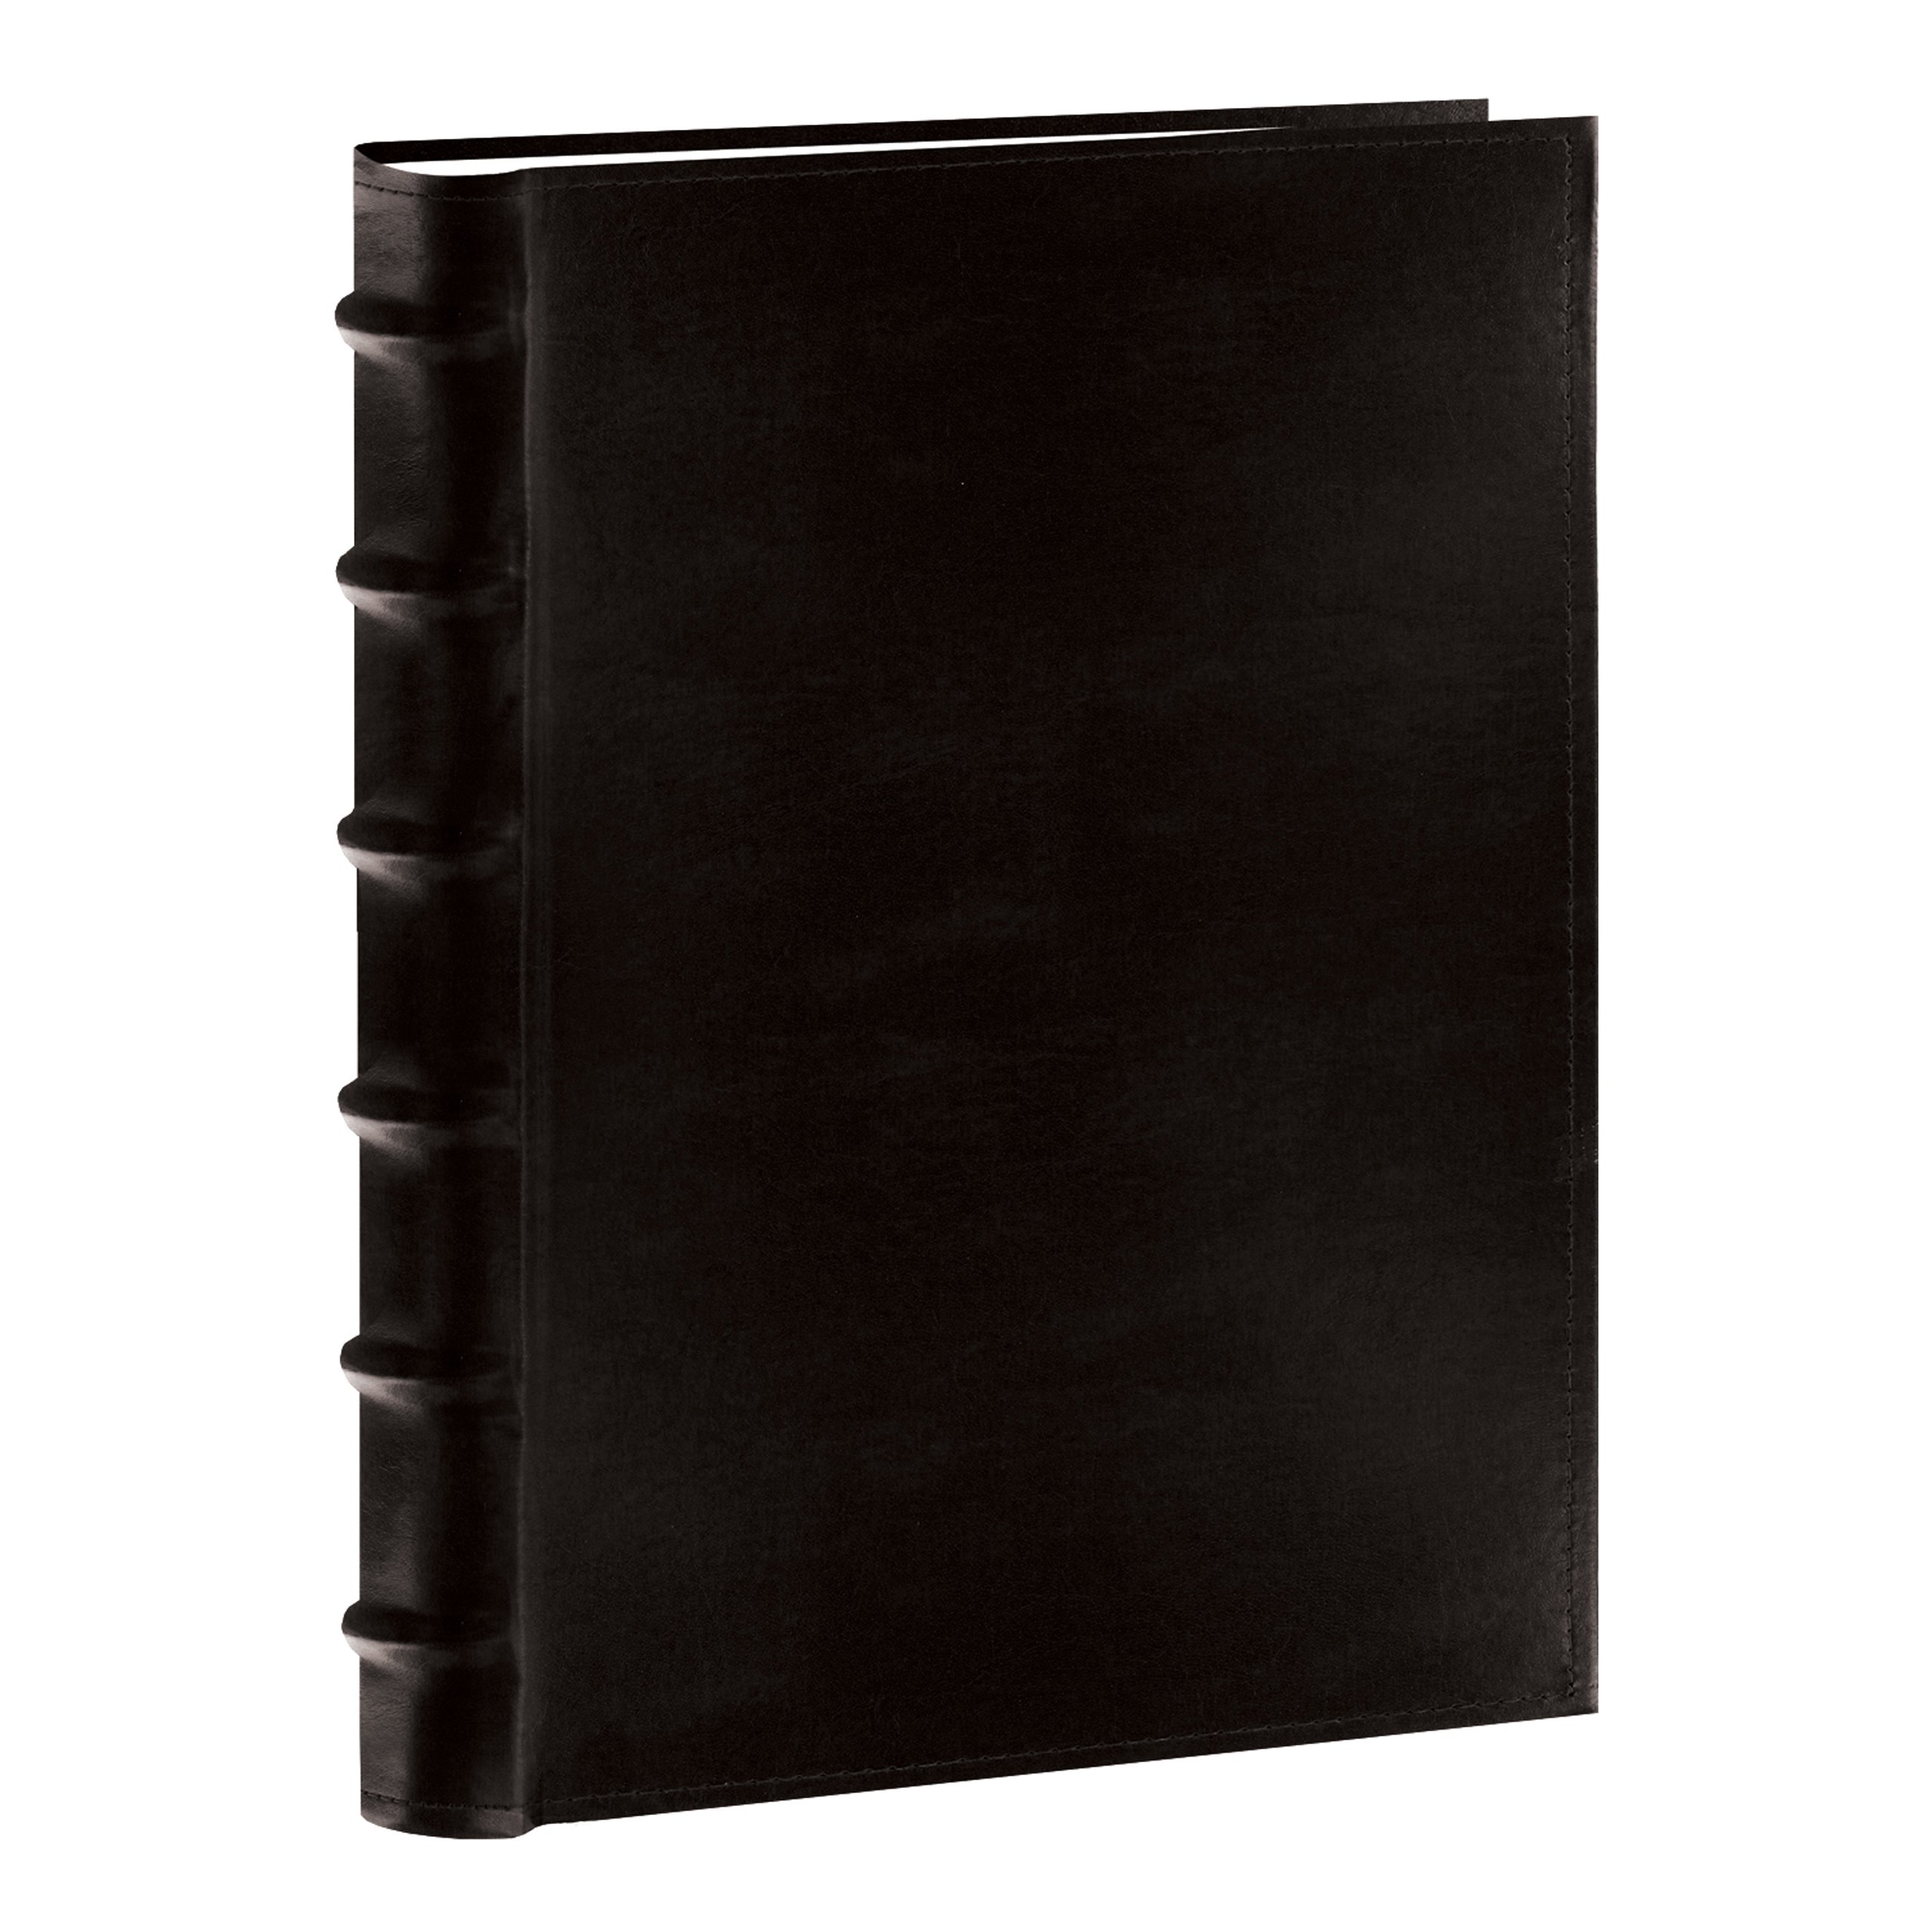 Pioneer Sewn Bonded Leather BookBound Bi-Directional Photo Album, Holds 300 4x6'' Photos, 3 Per Page. Color: Black.